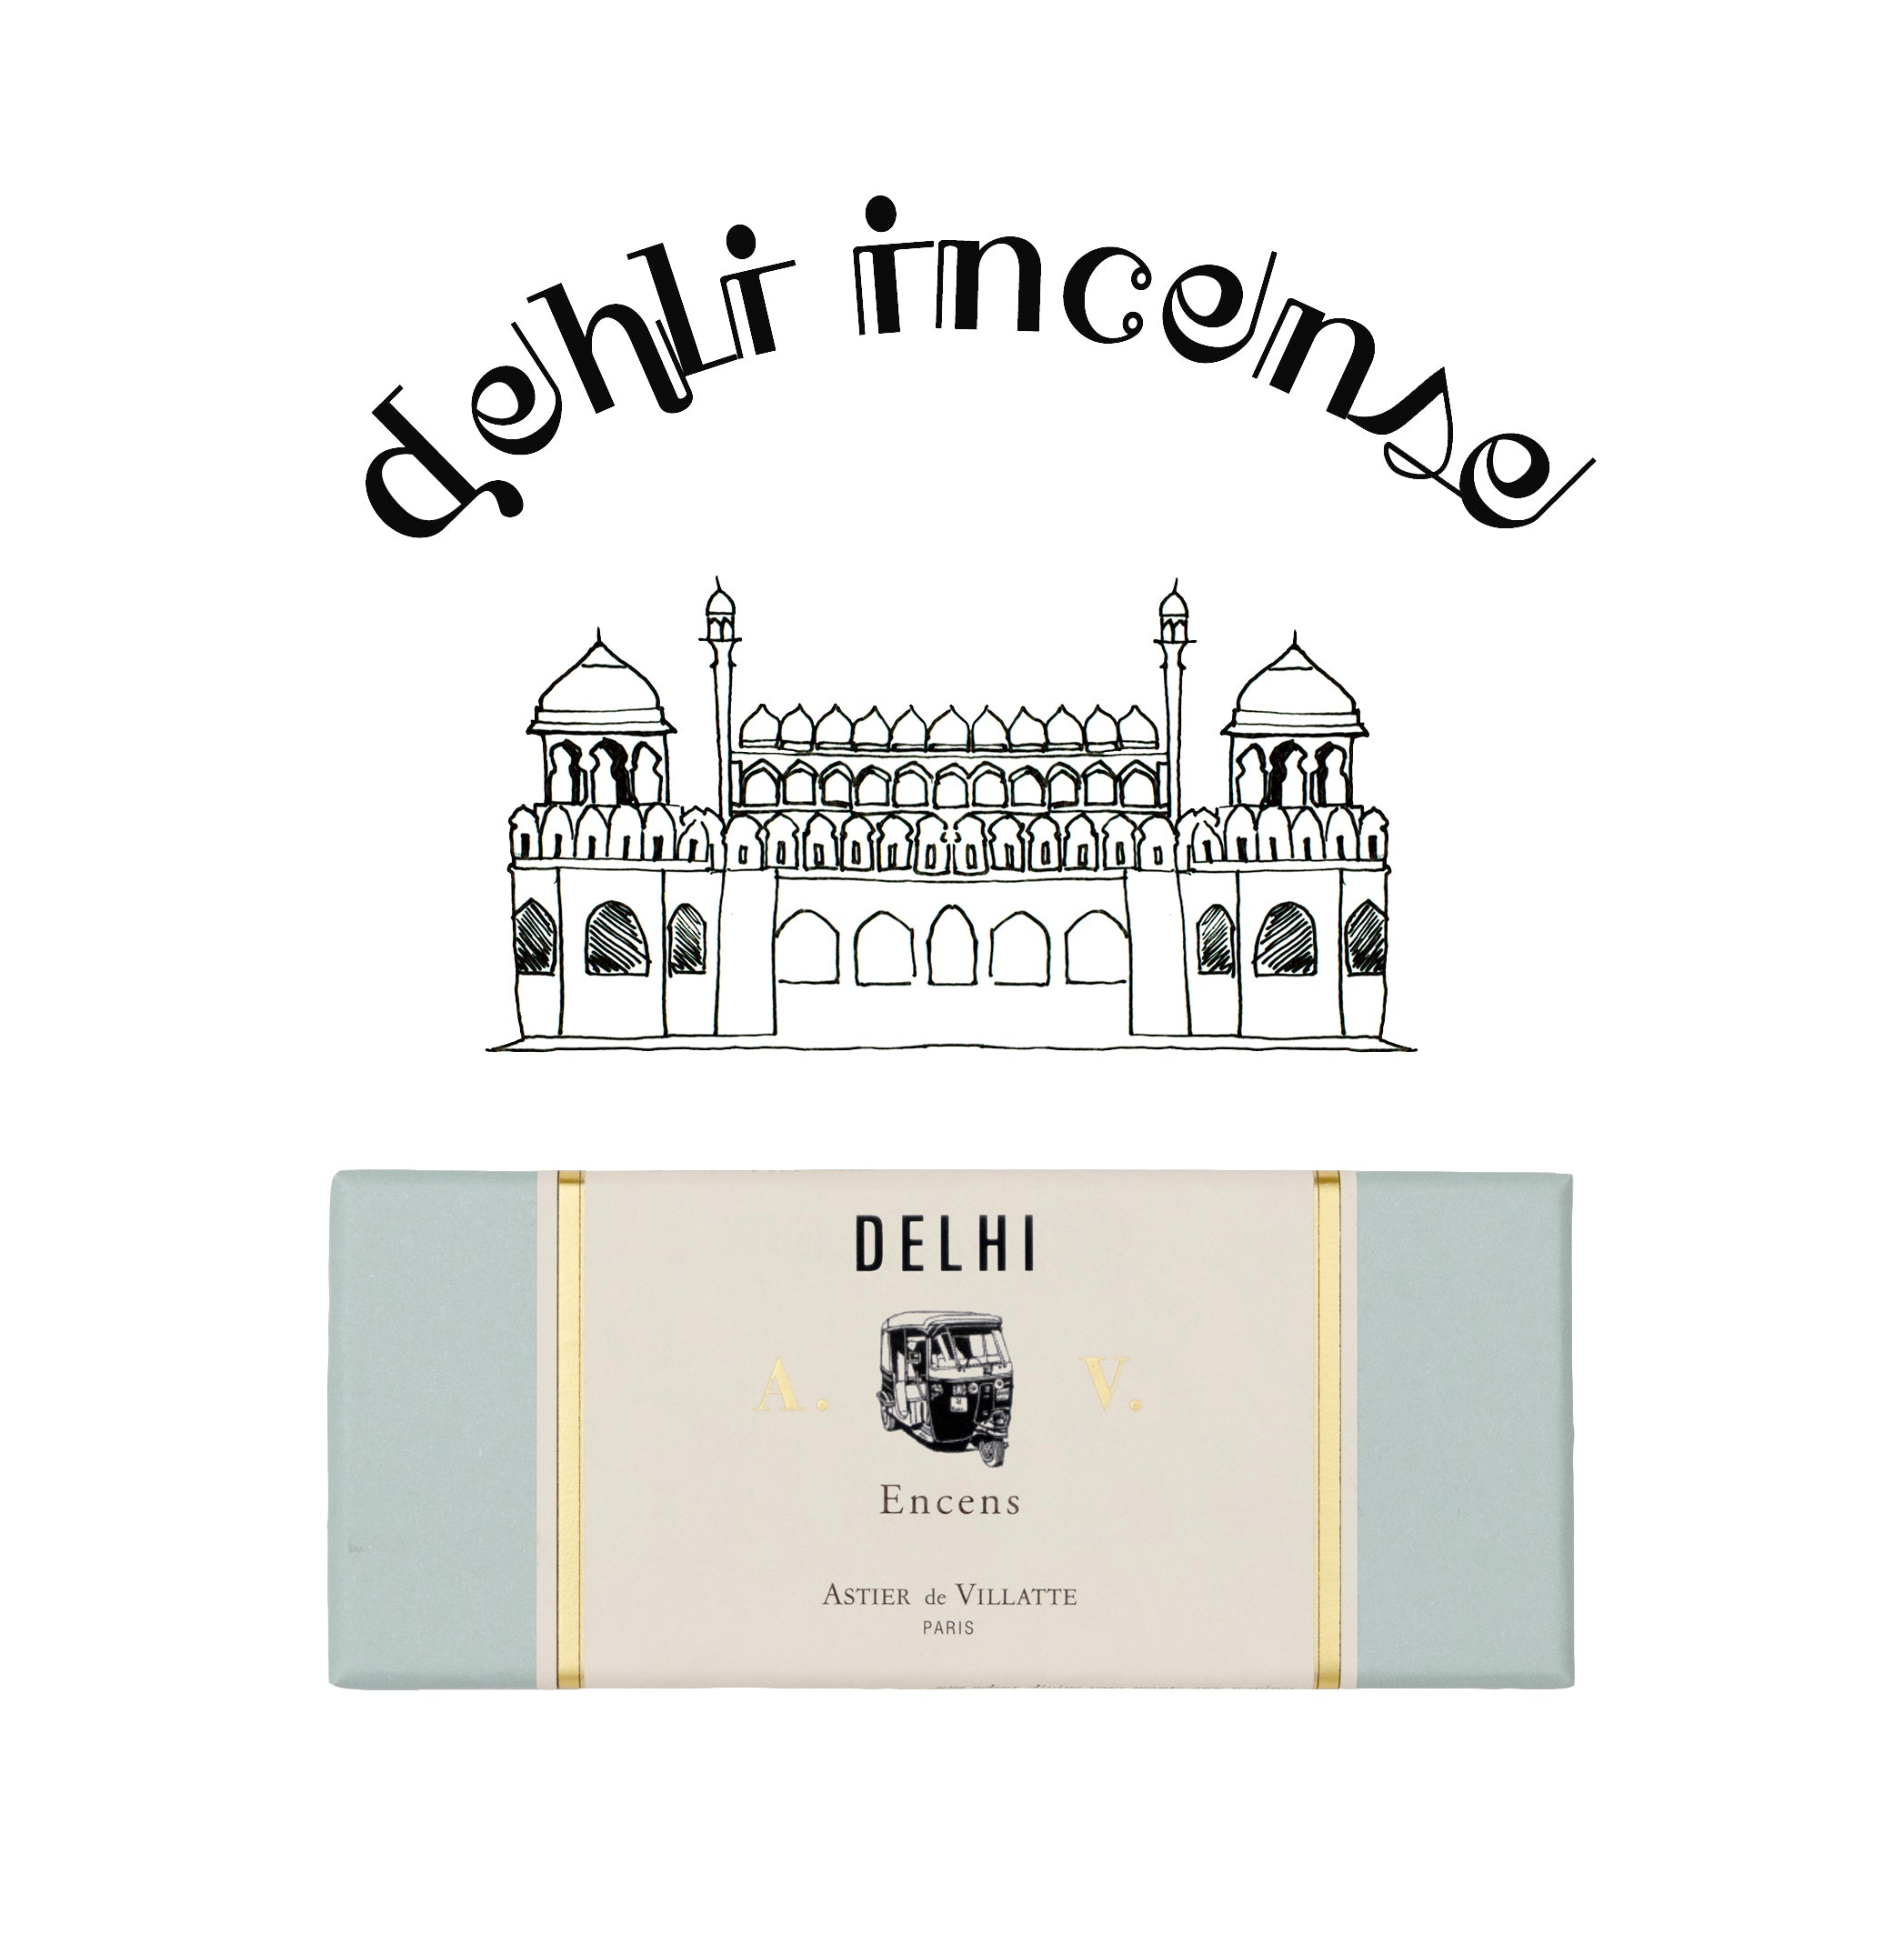 Delhi Incense by Astier de Villatte